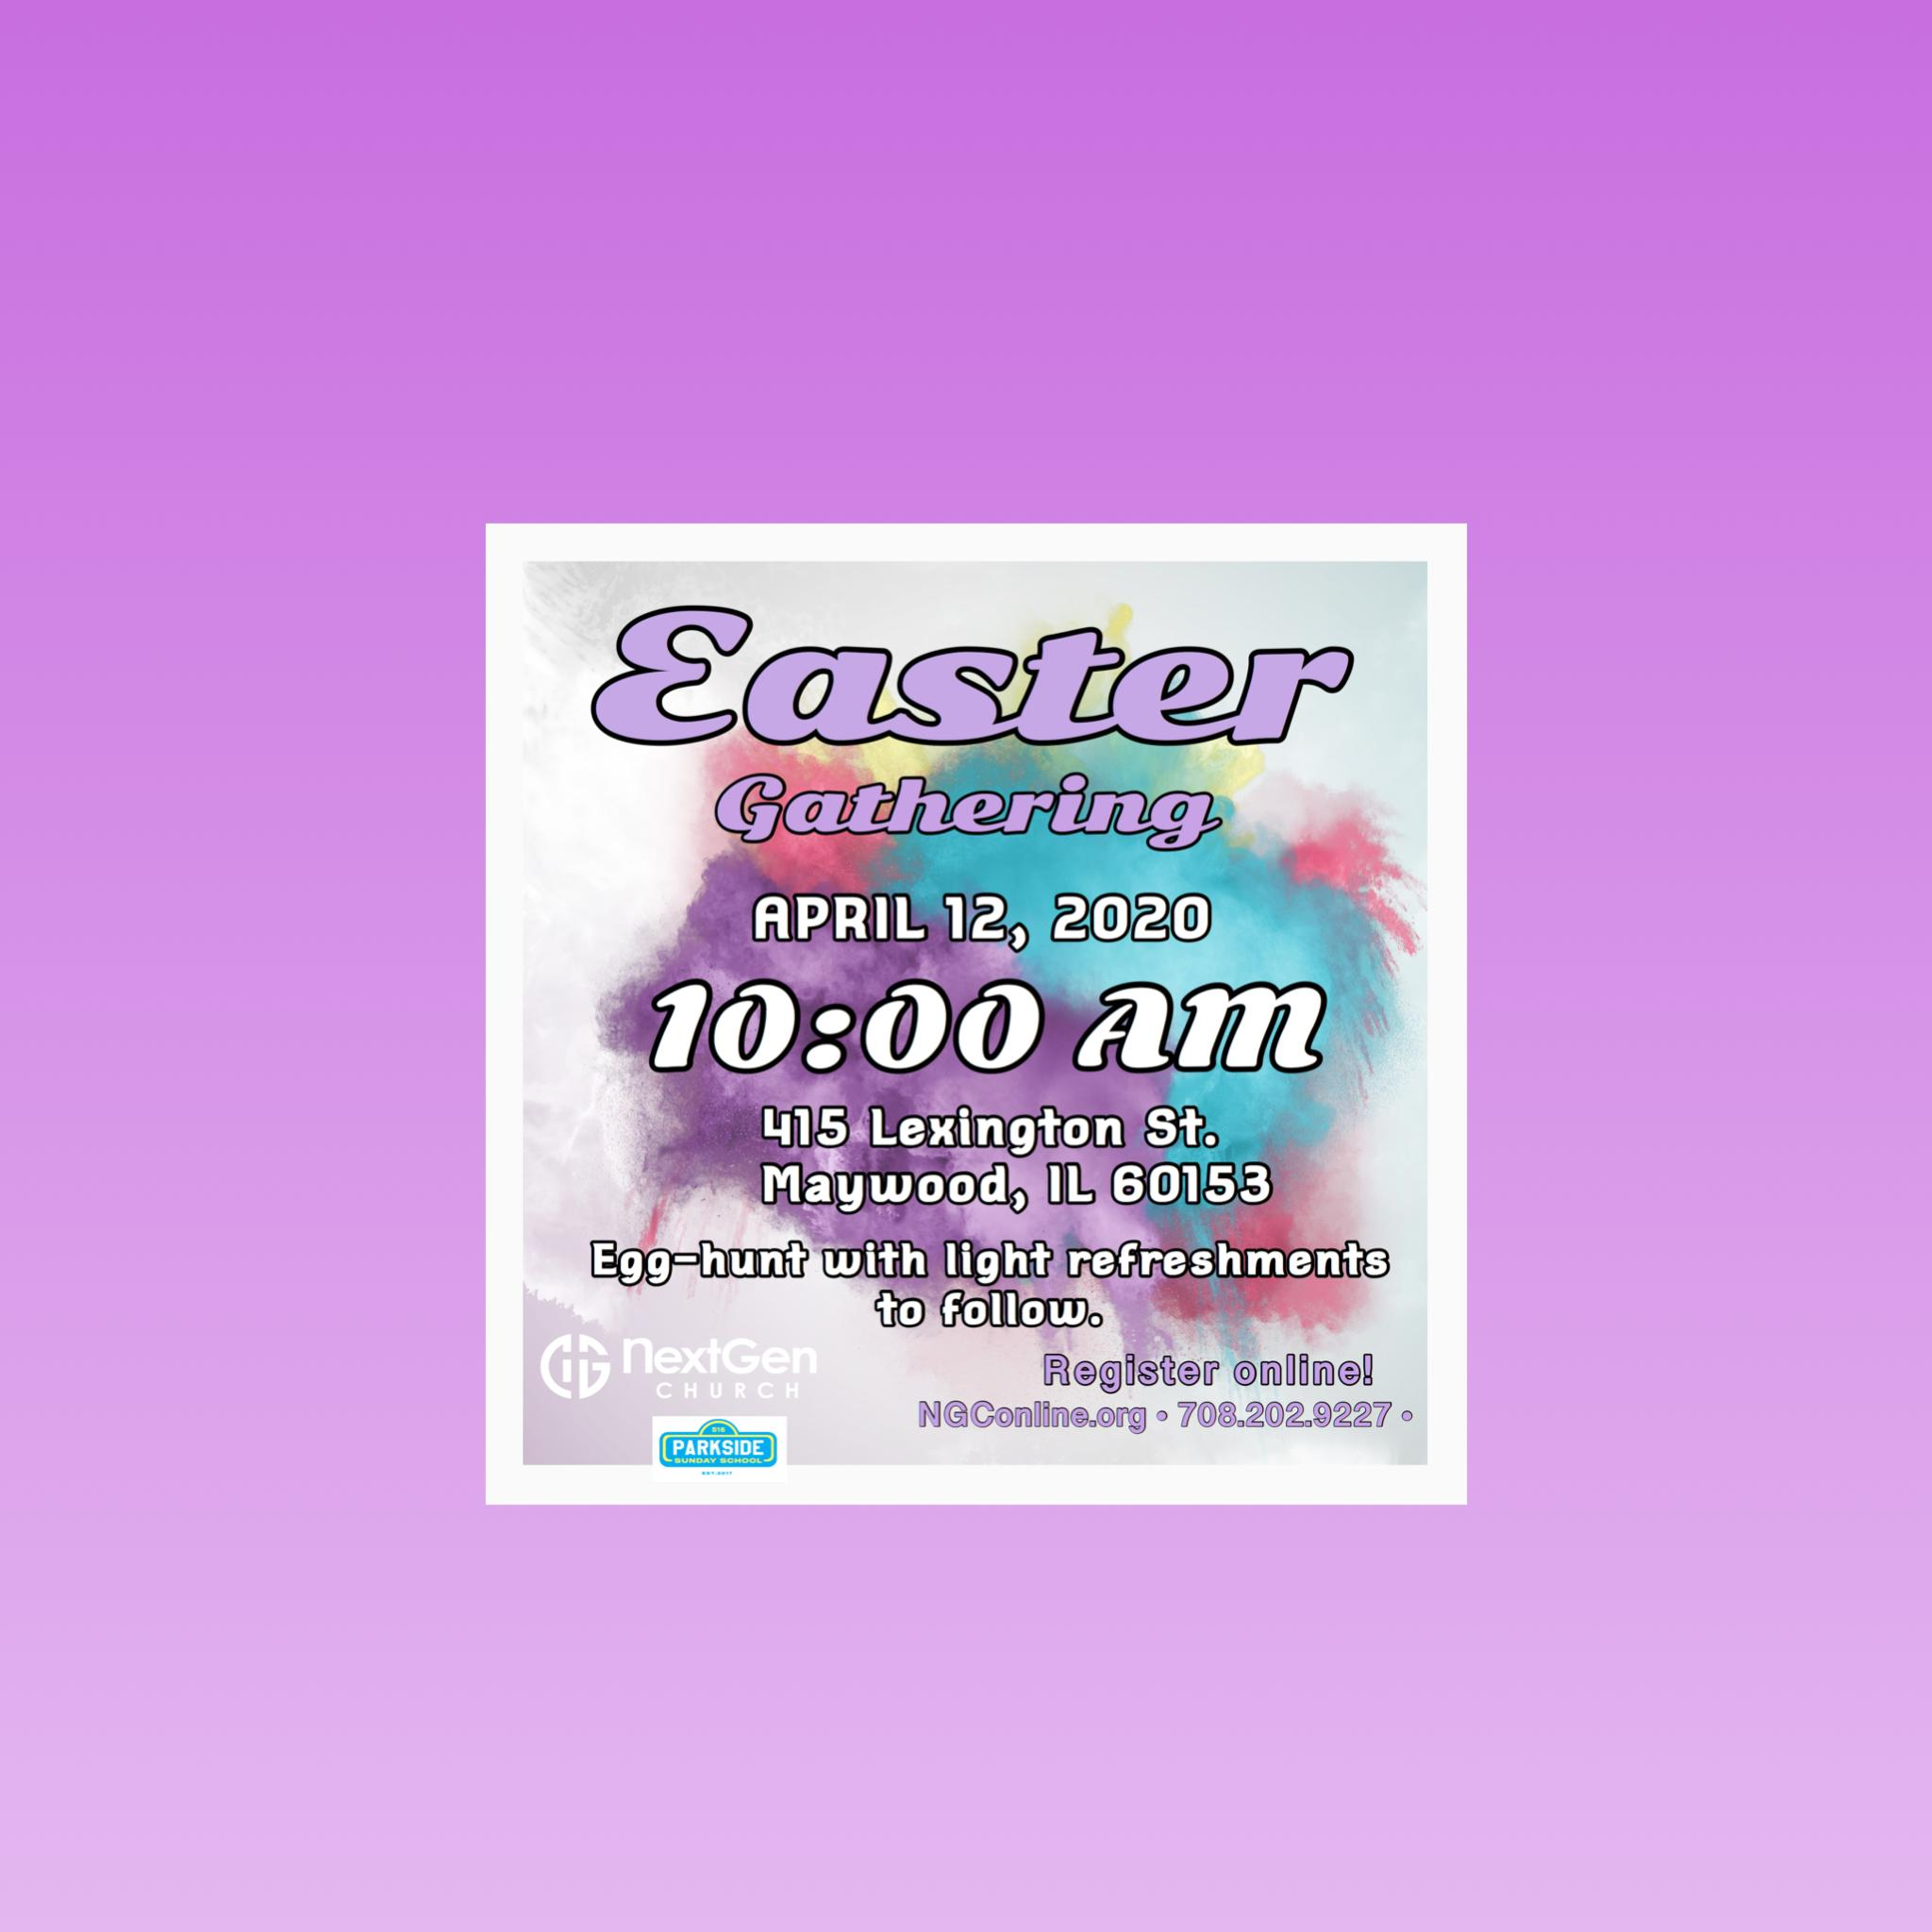 Easter Gathering and Egg Hunt at Next Gen